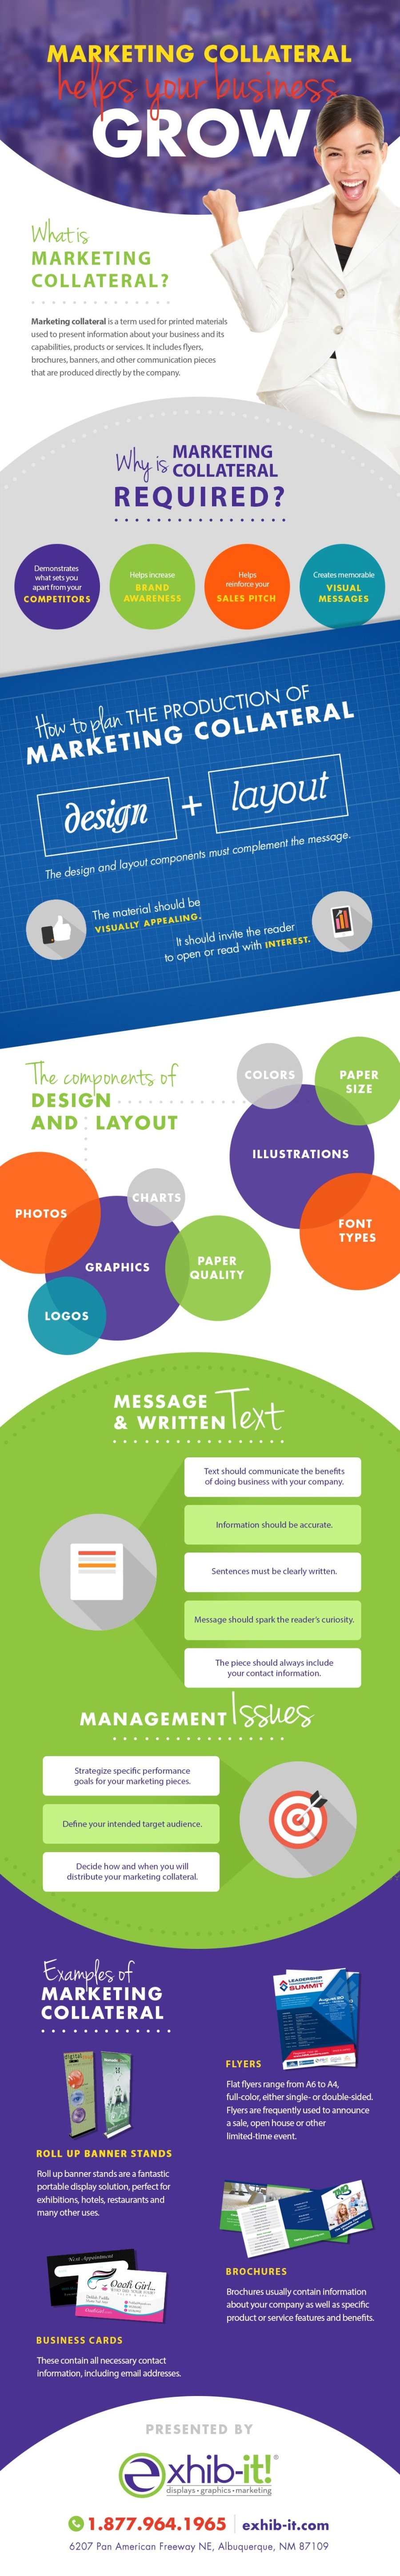 marketing-collateral-infographic.jpg